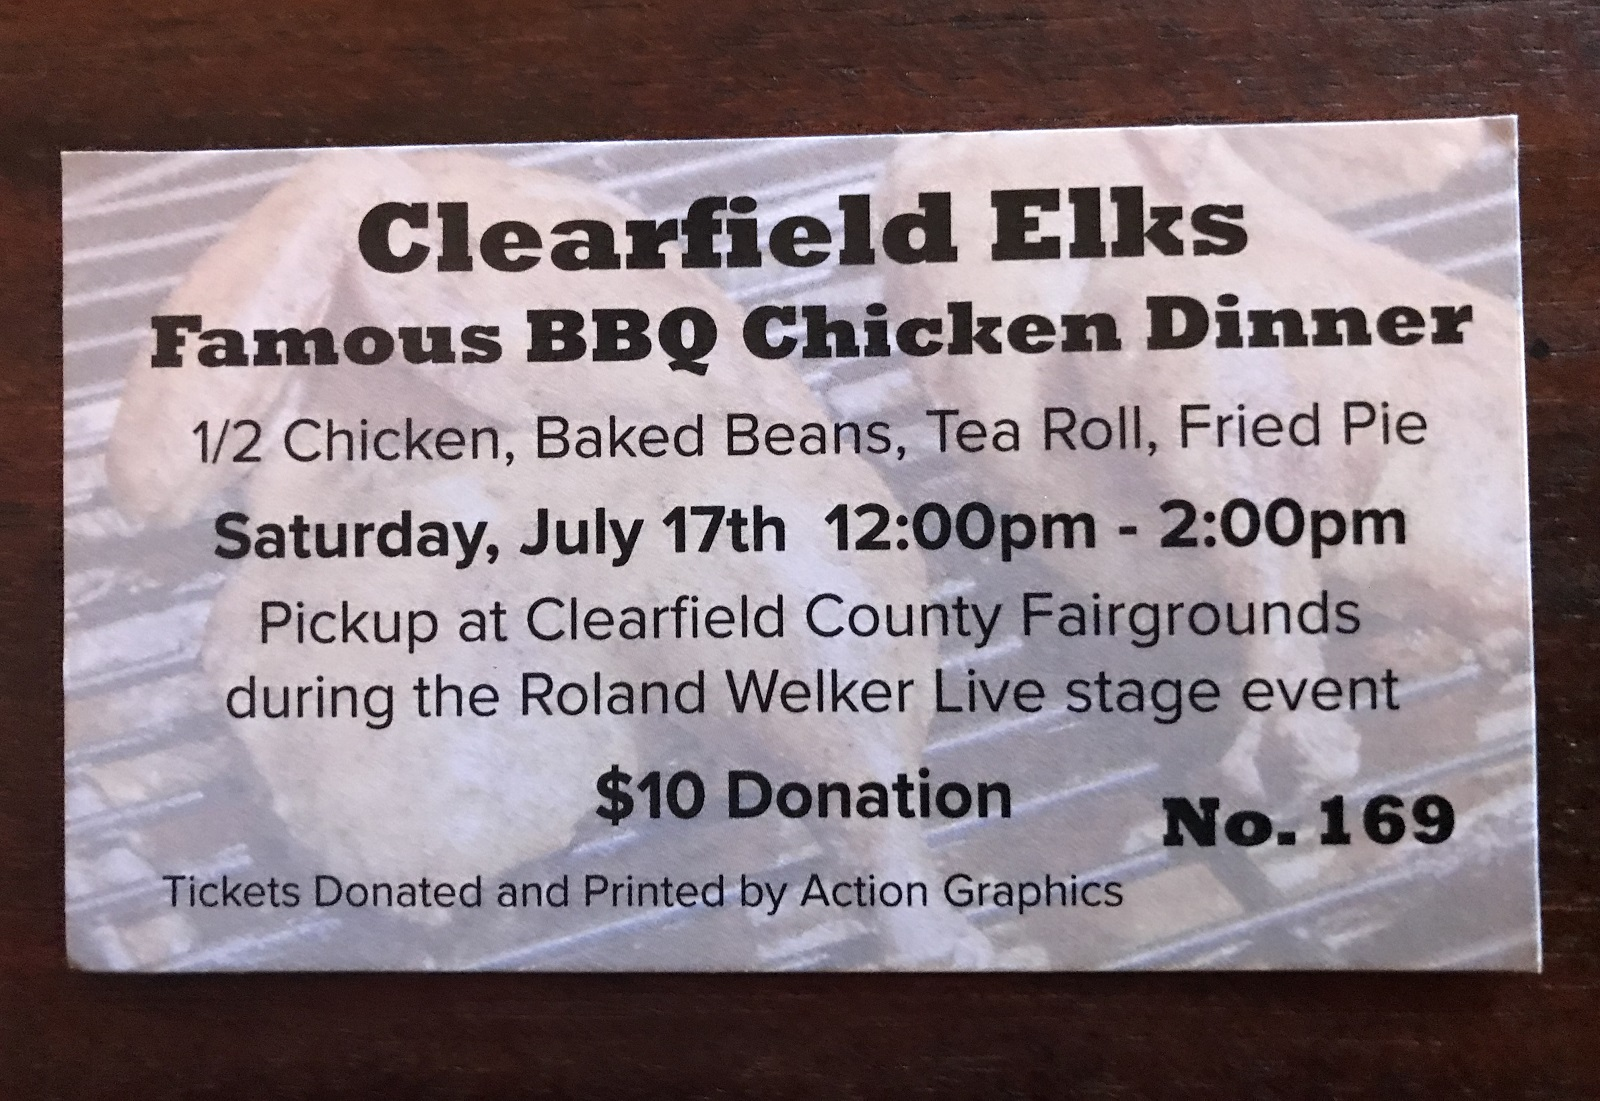 Clearfield Elks to Host Famous BBQ Chicken Dinner